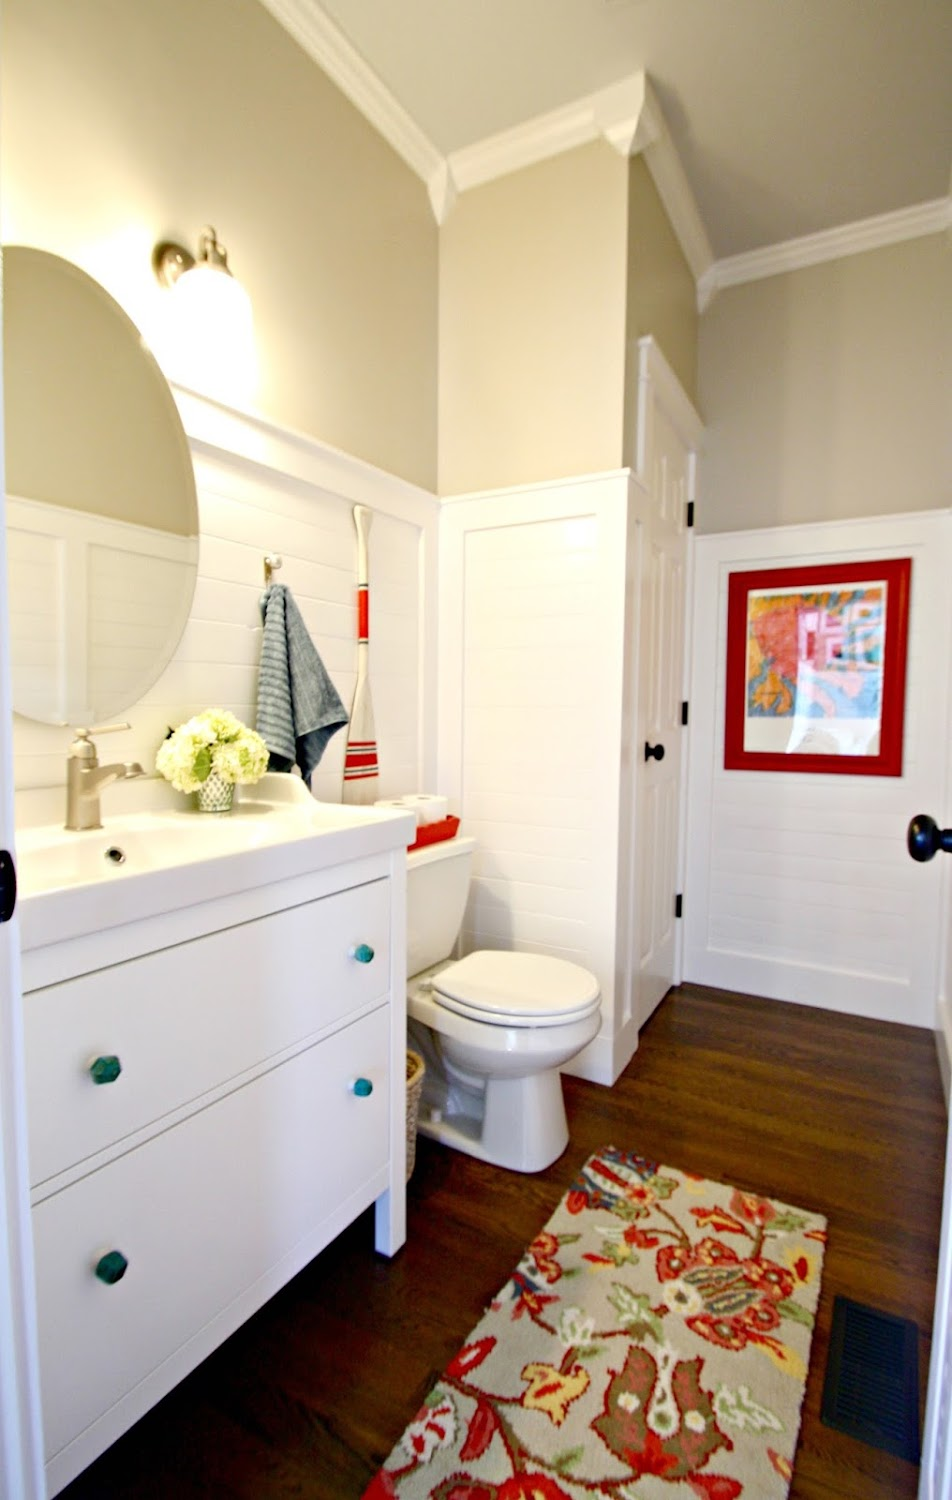 planked walls in bathroom